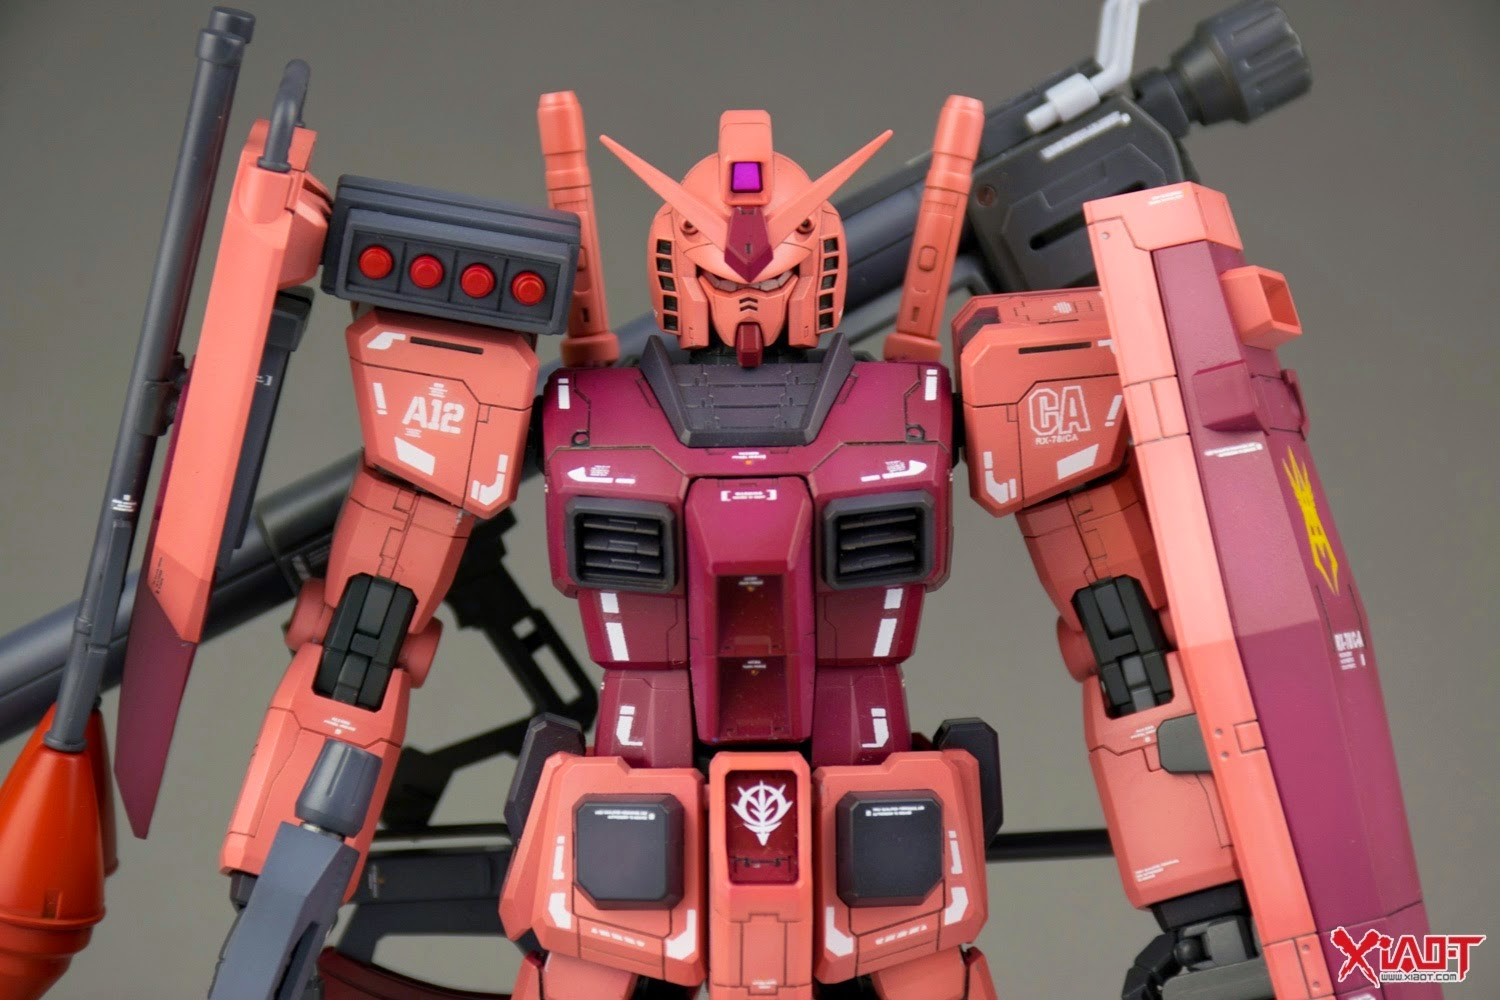 RX-78 CA MG 1/100 RX-78/C.A. Char Aznable's Customized Gundam Custom Build